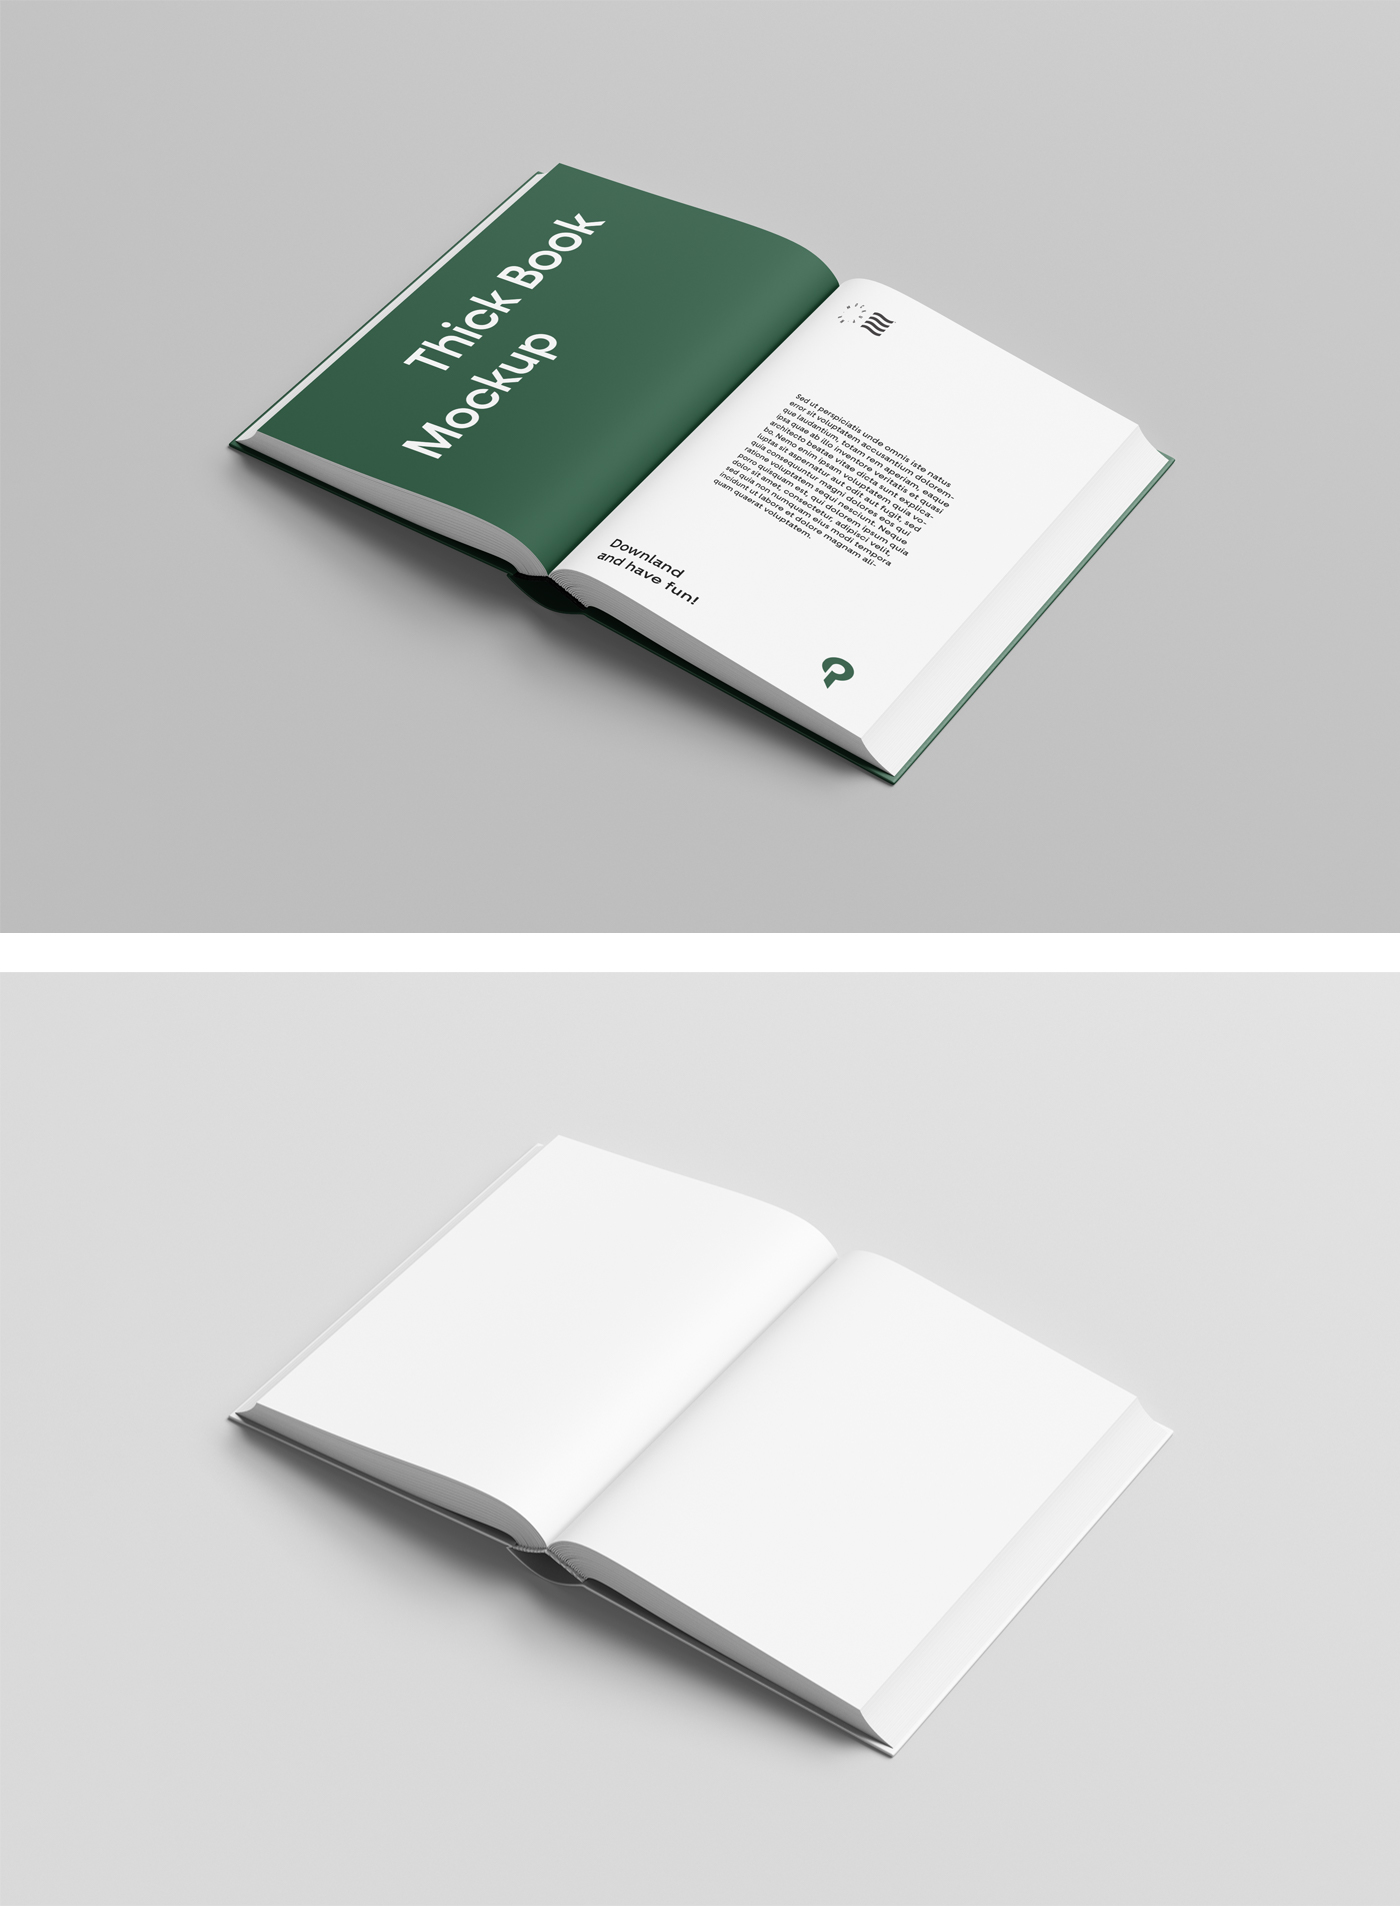 Hard Cover Open Book Mockup